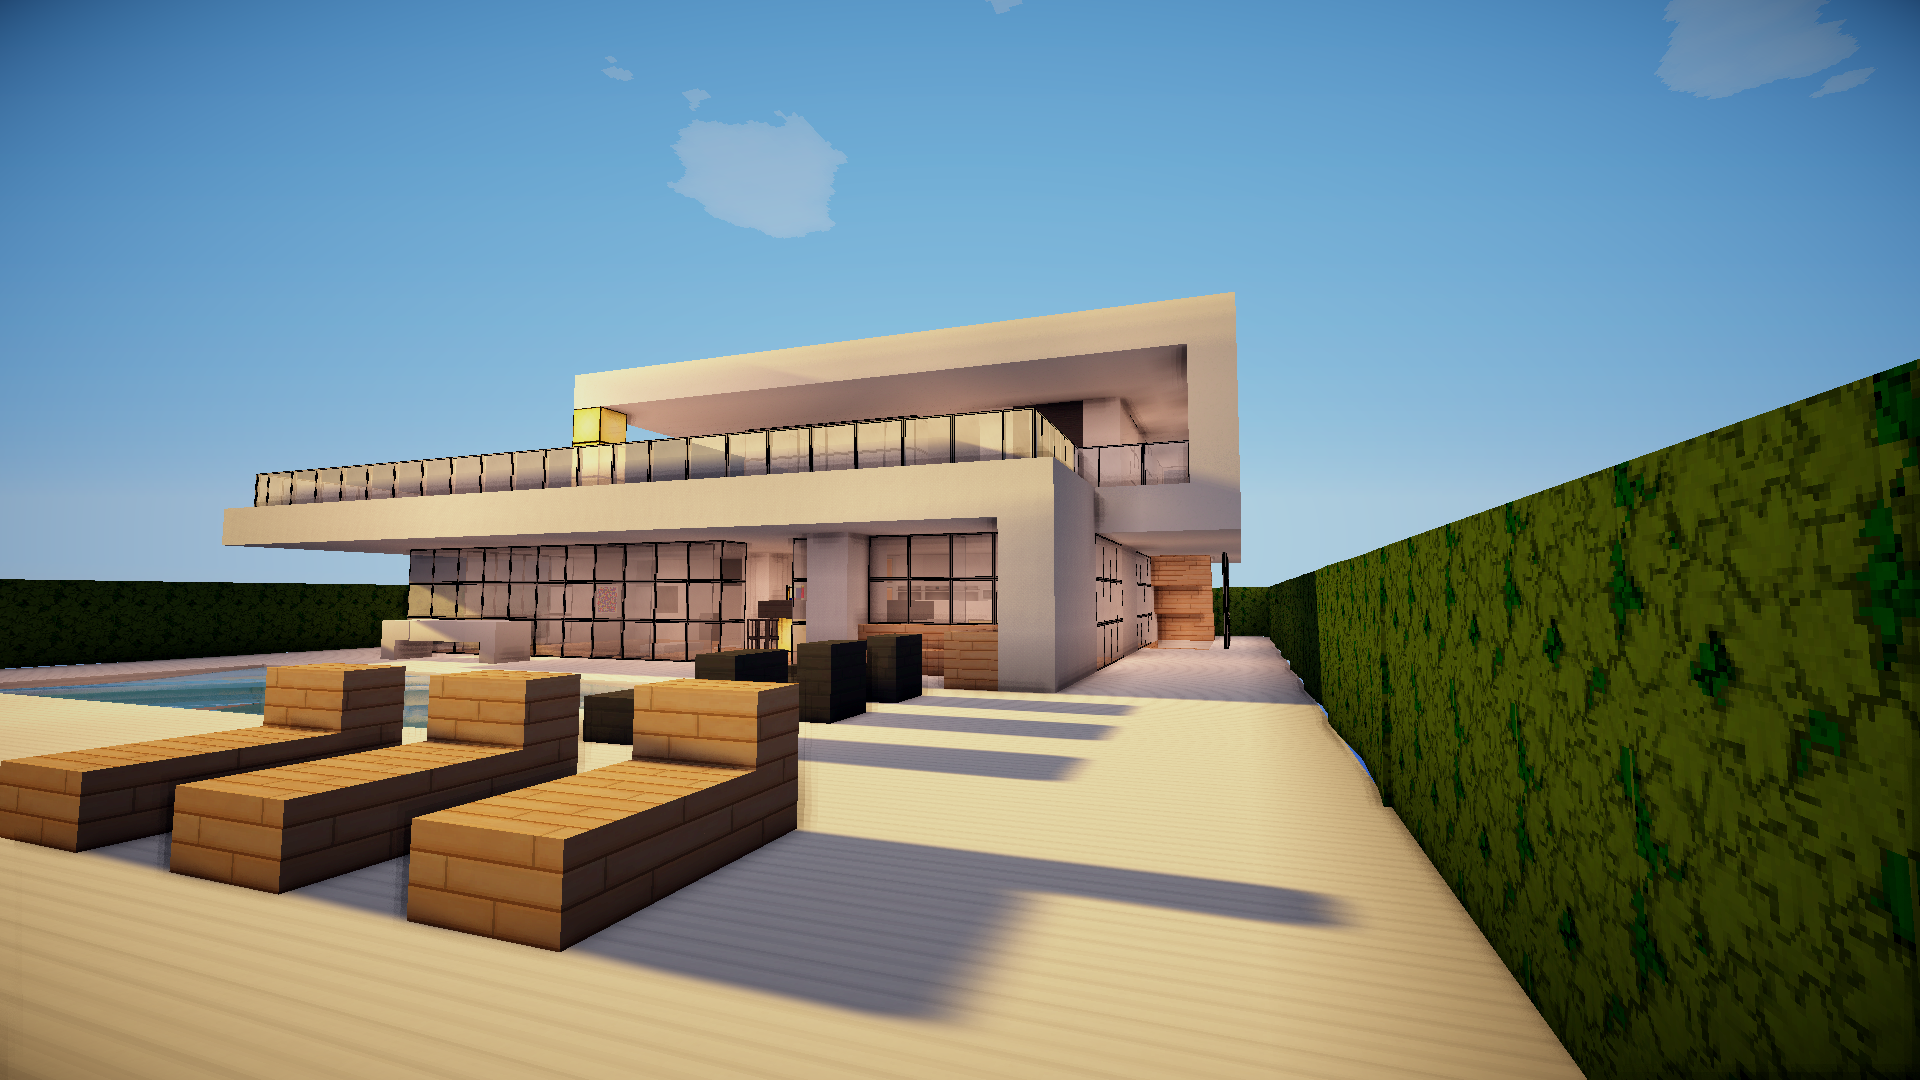 Modernes helles haus minecraft forum for Modernes haus minecraft